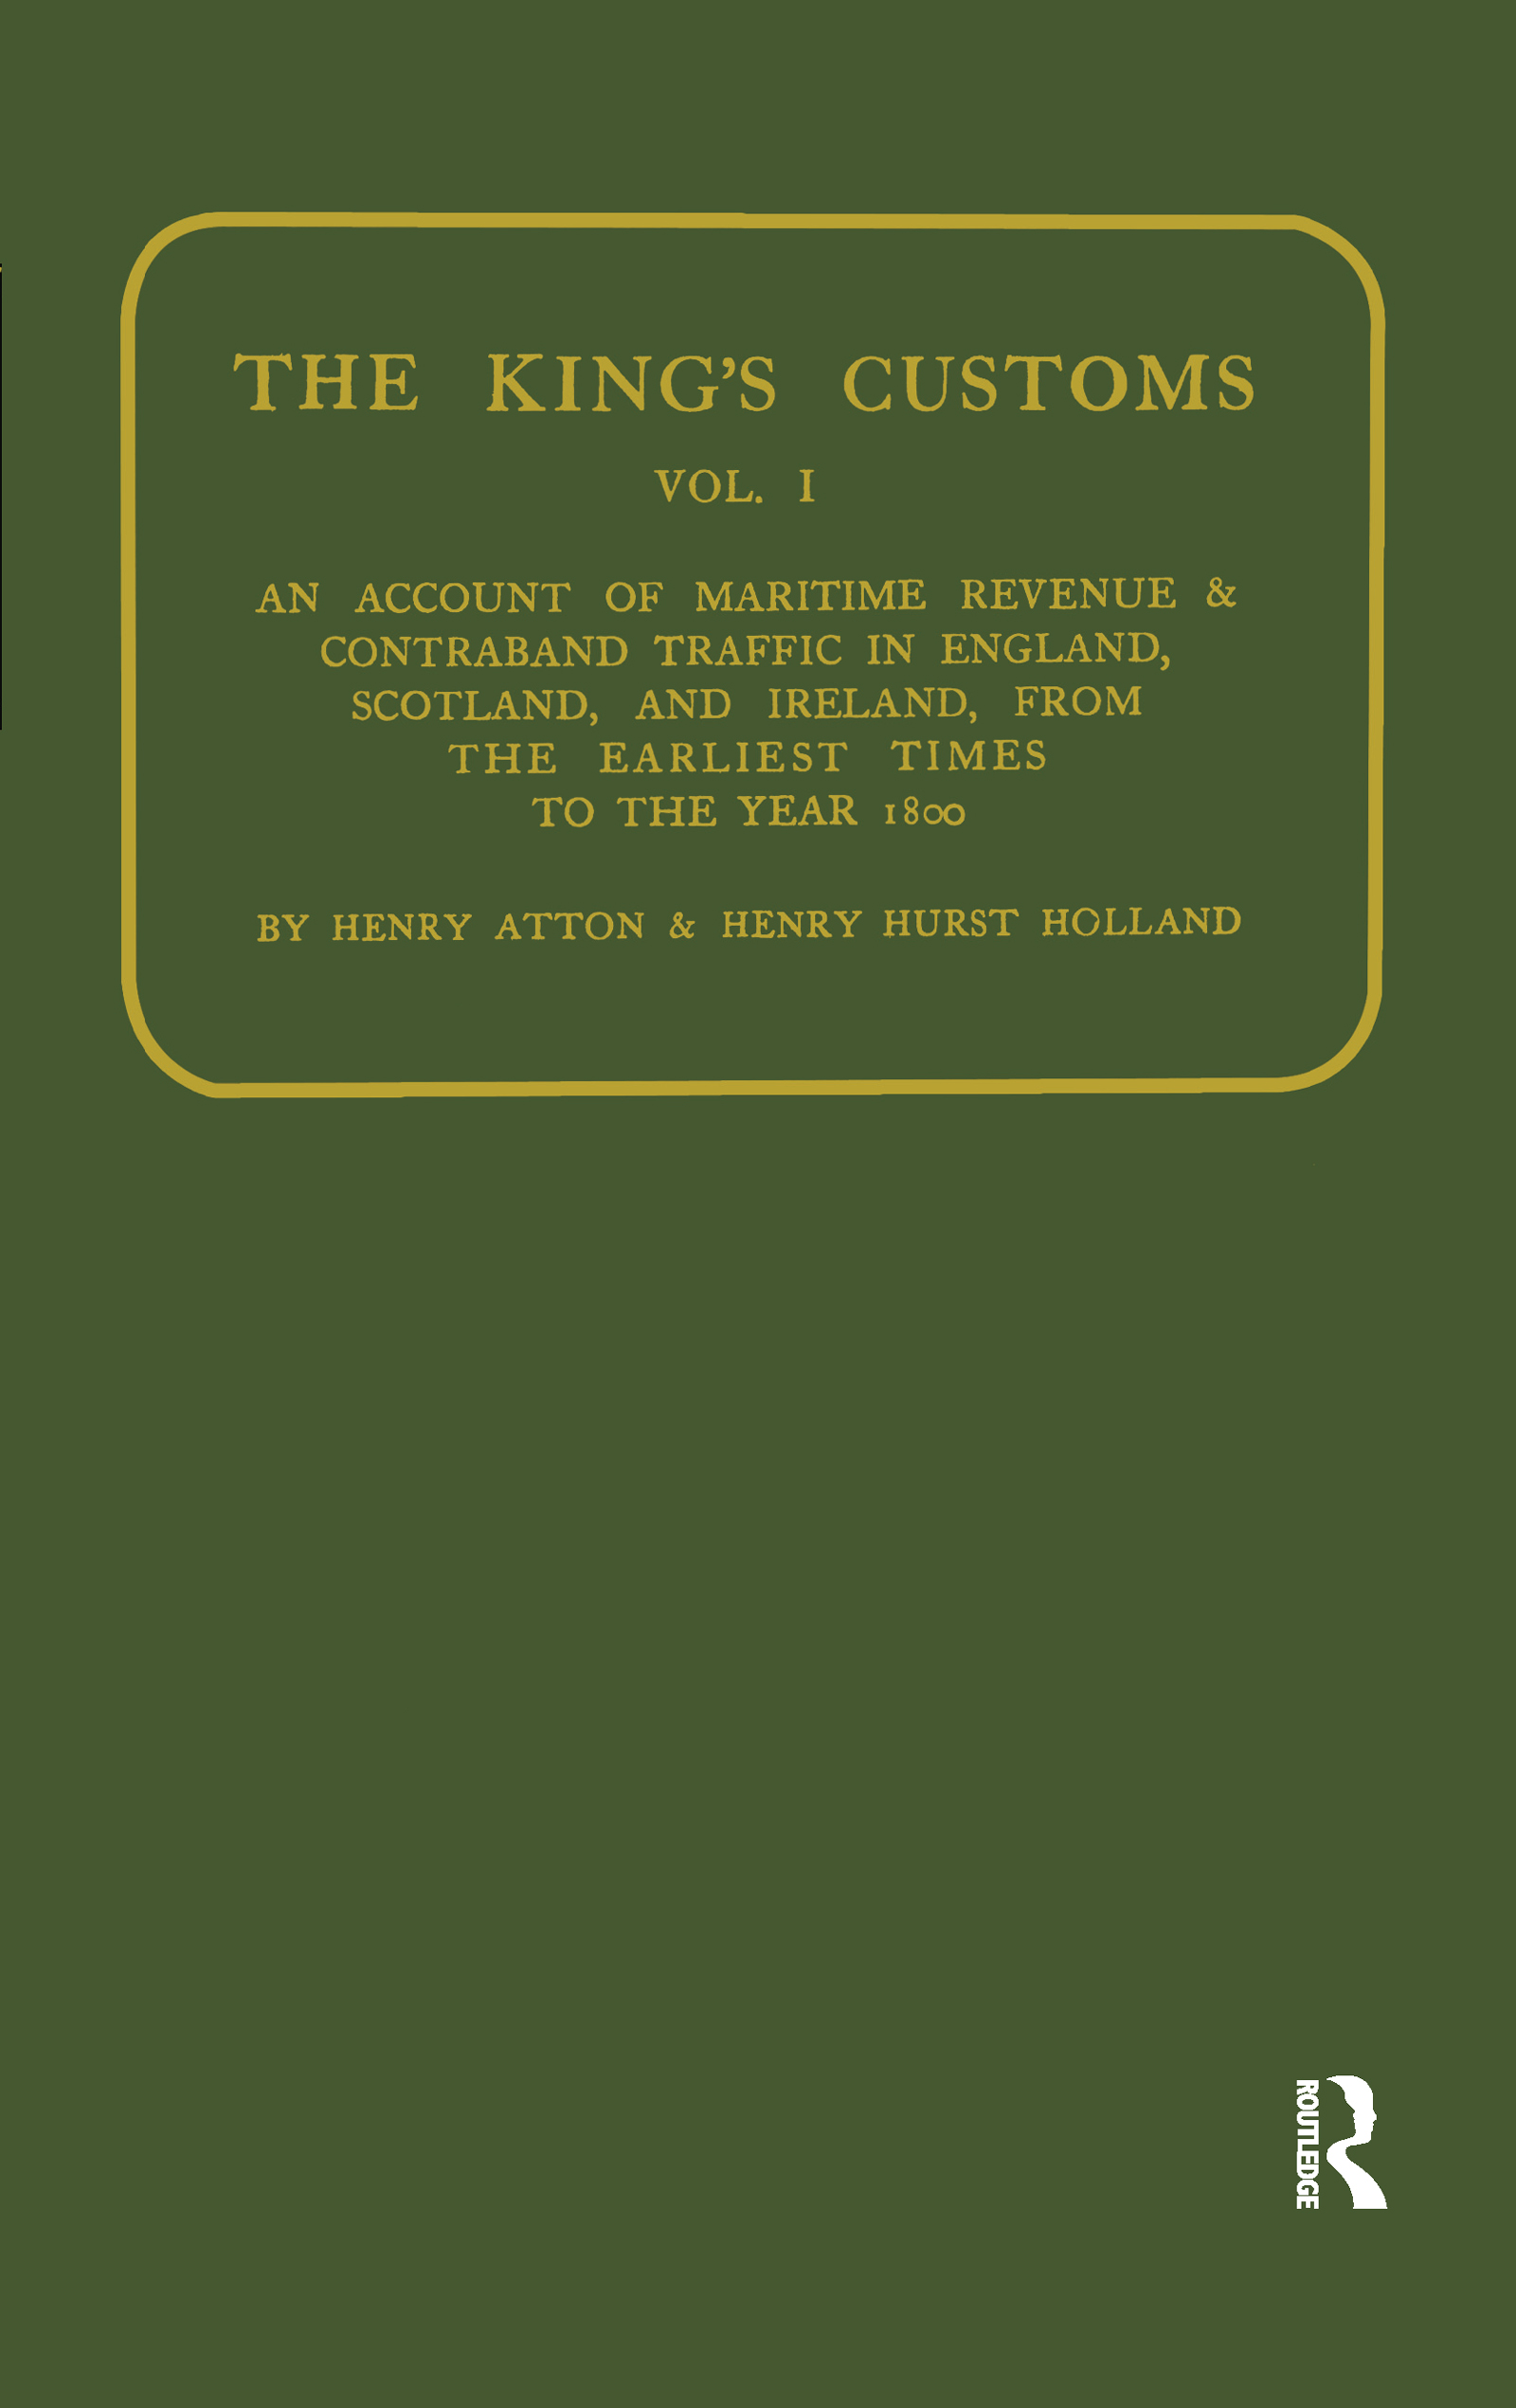 Kings Customs: An Account of Maritime Revenue and Conraband Traffic book cover